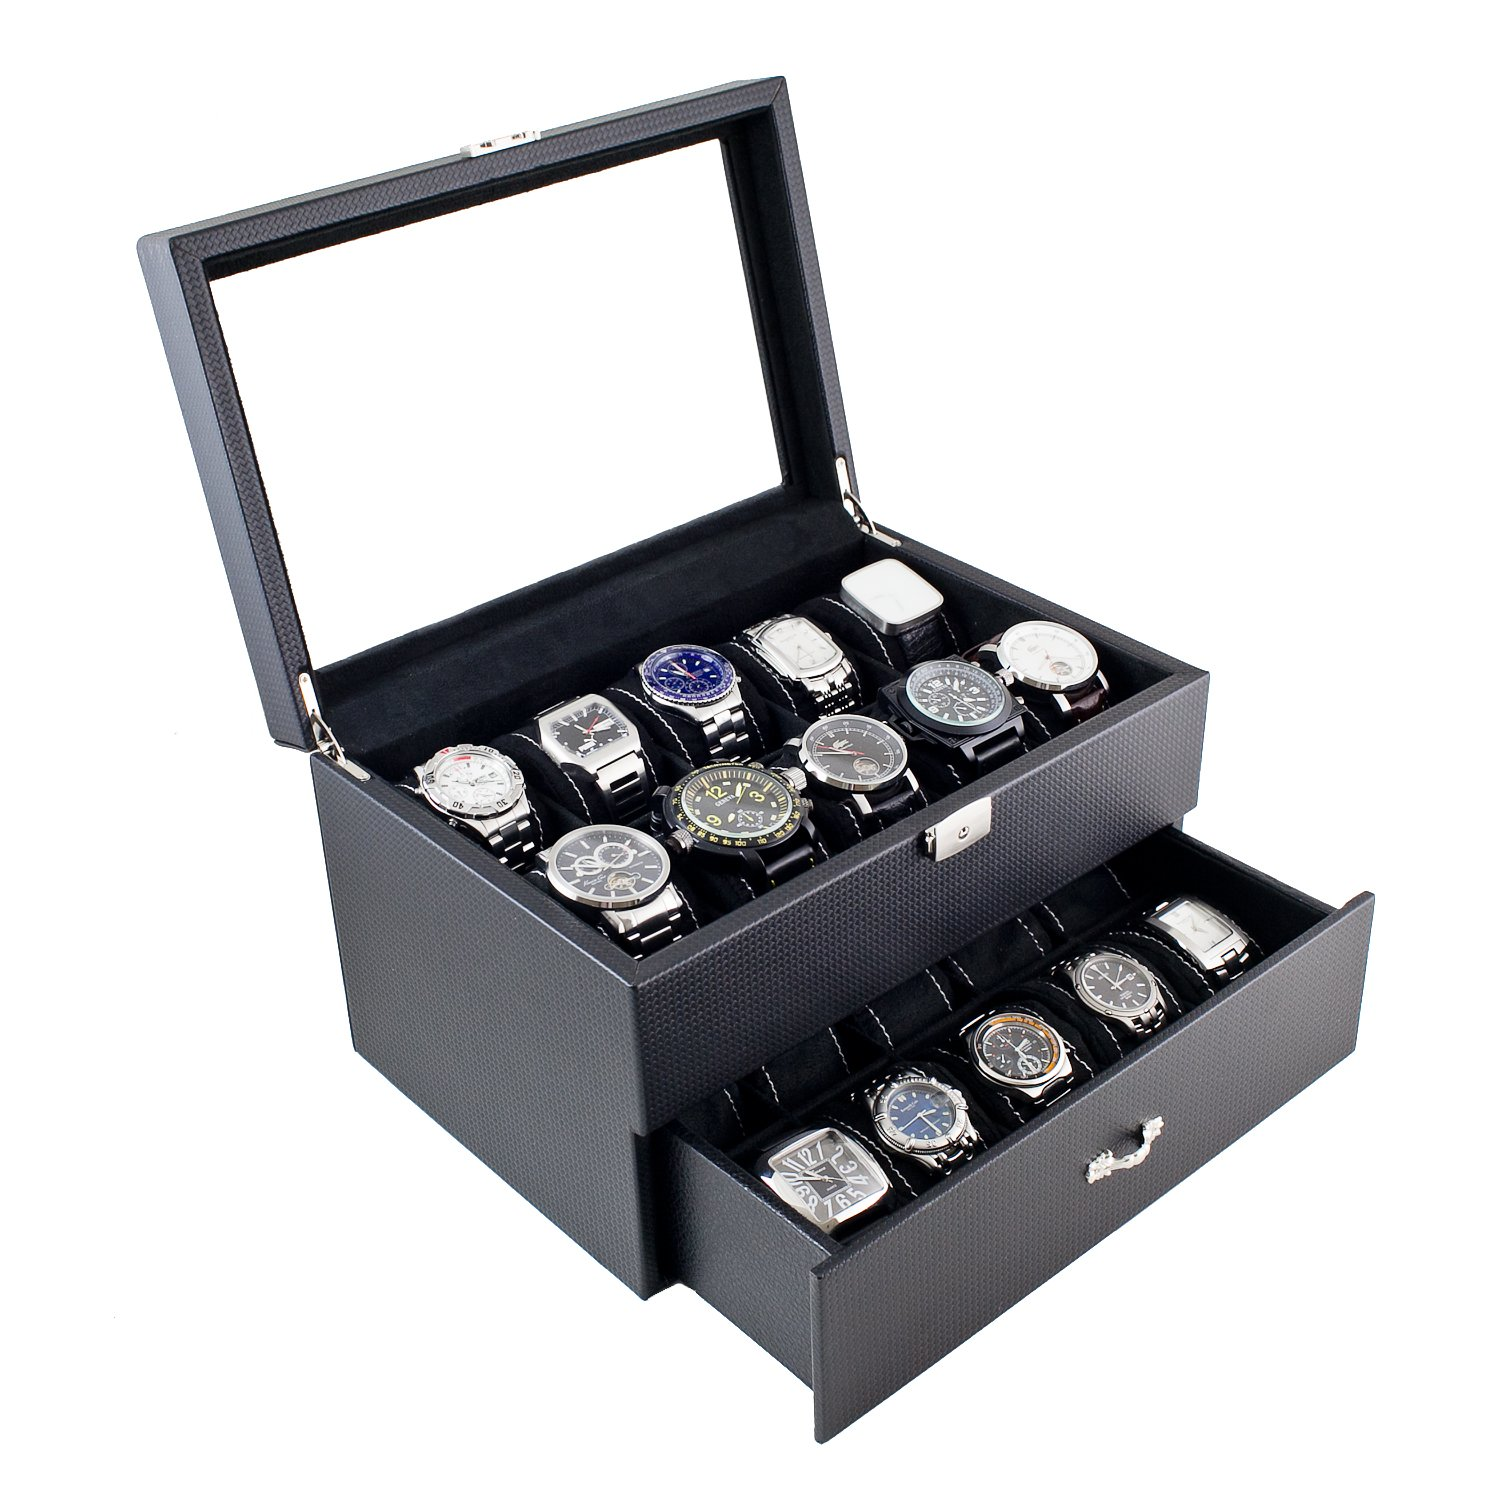 Caddy Bay Collection Carbon Fiber Pattern Glass Top Watch Case Display Storage Box Chest Holds 20 Watches With High Clearance for Larger Watches